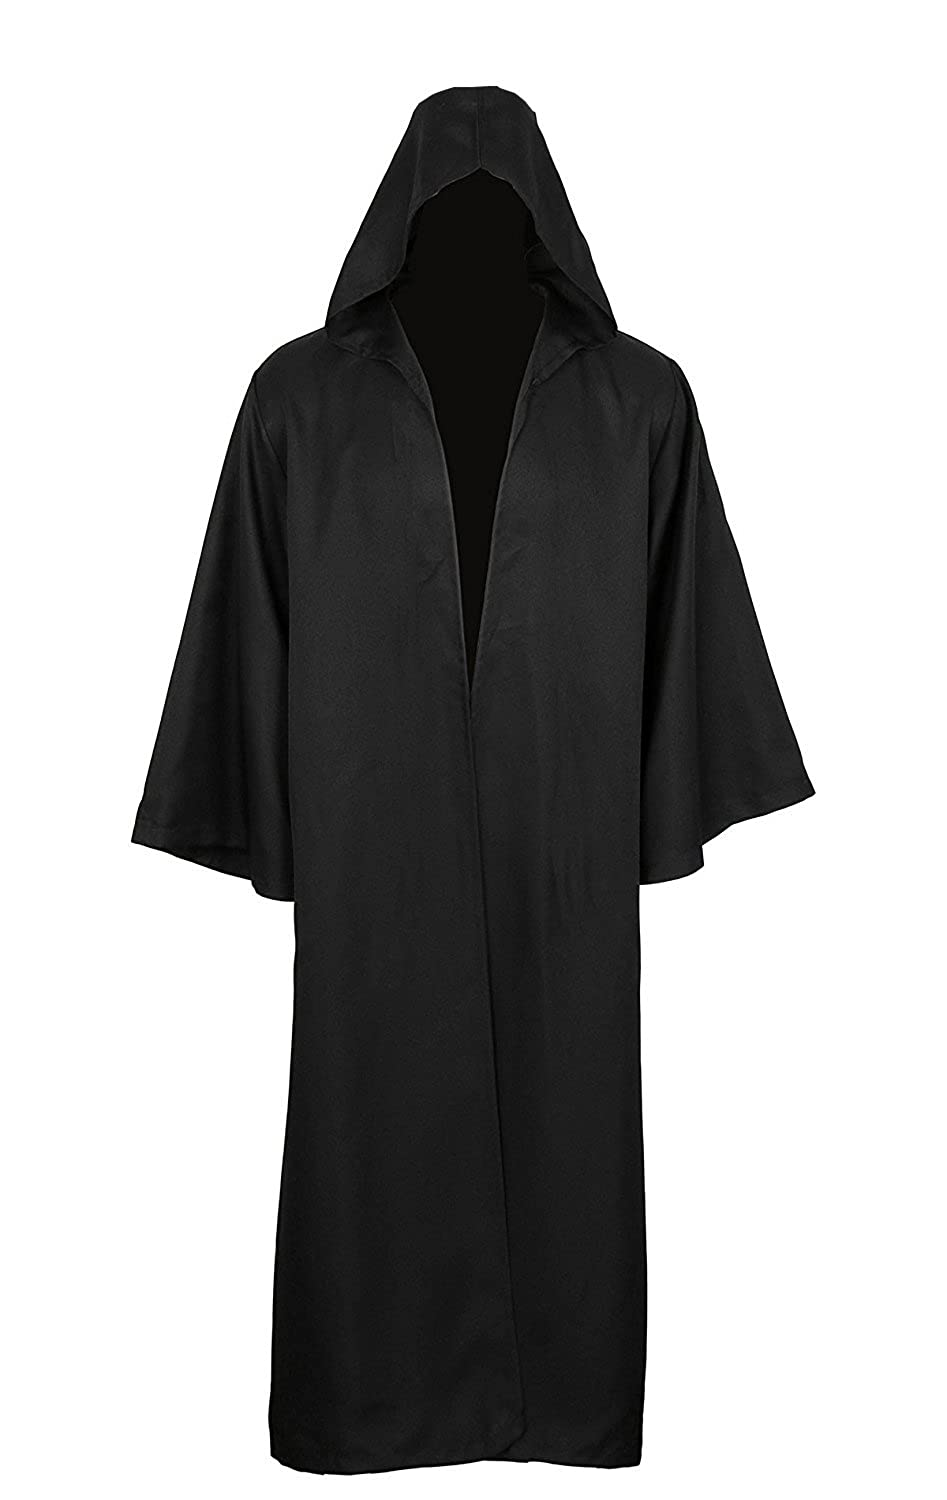 Golden service Adult Halloween Costume Tunic Hoodies Robe Cosplay Capes